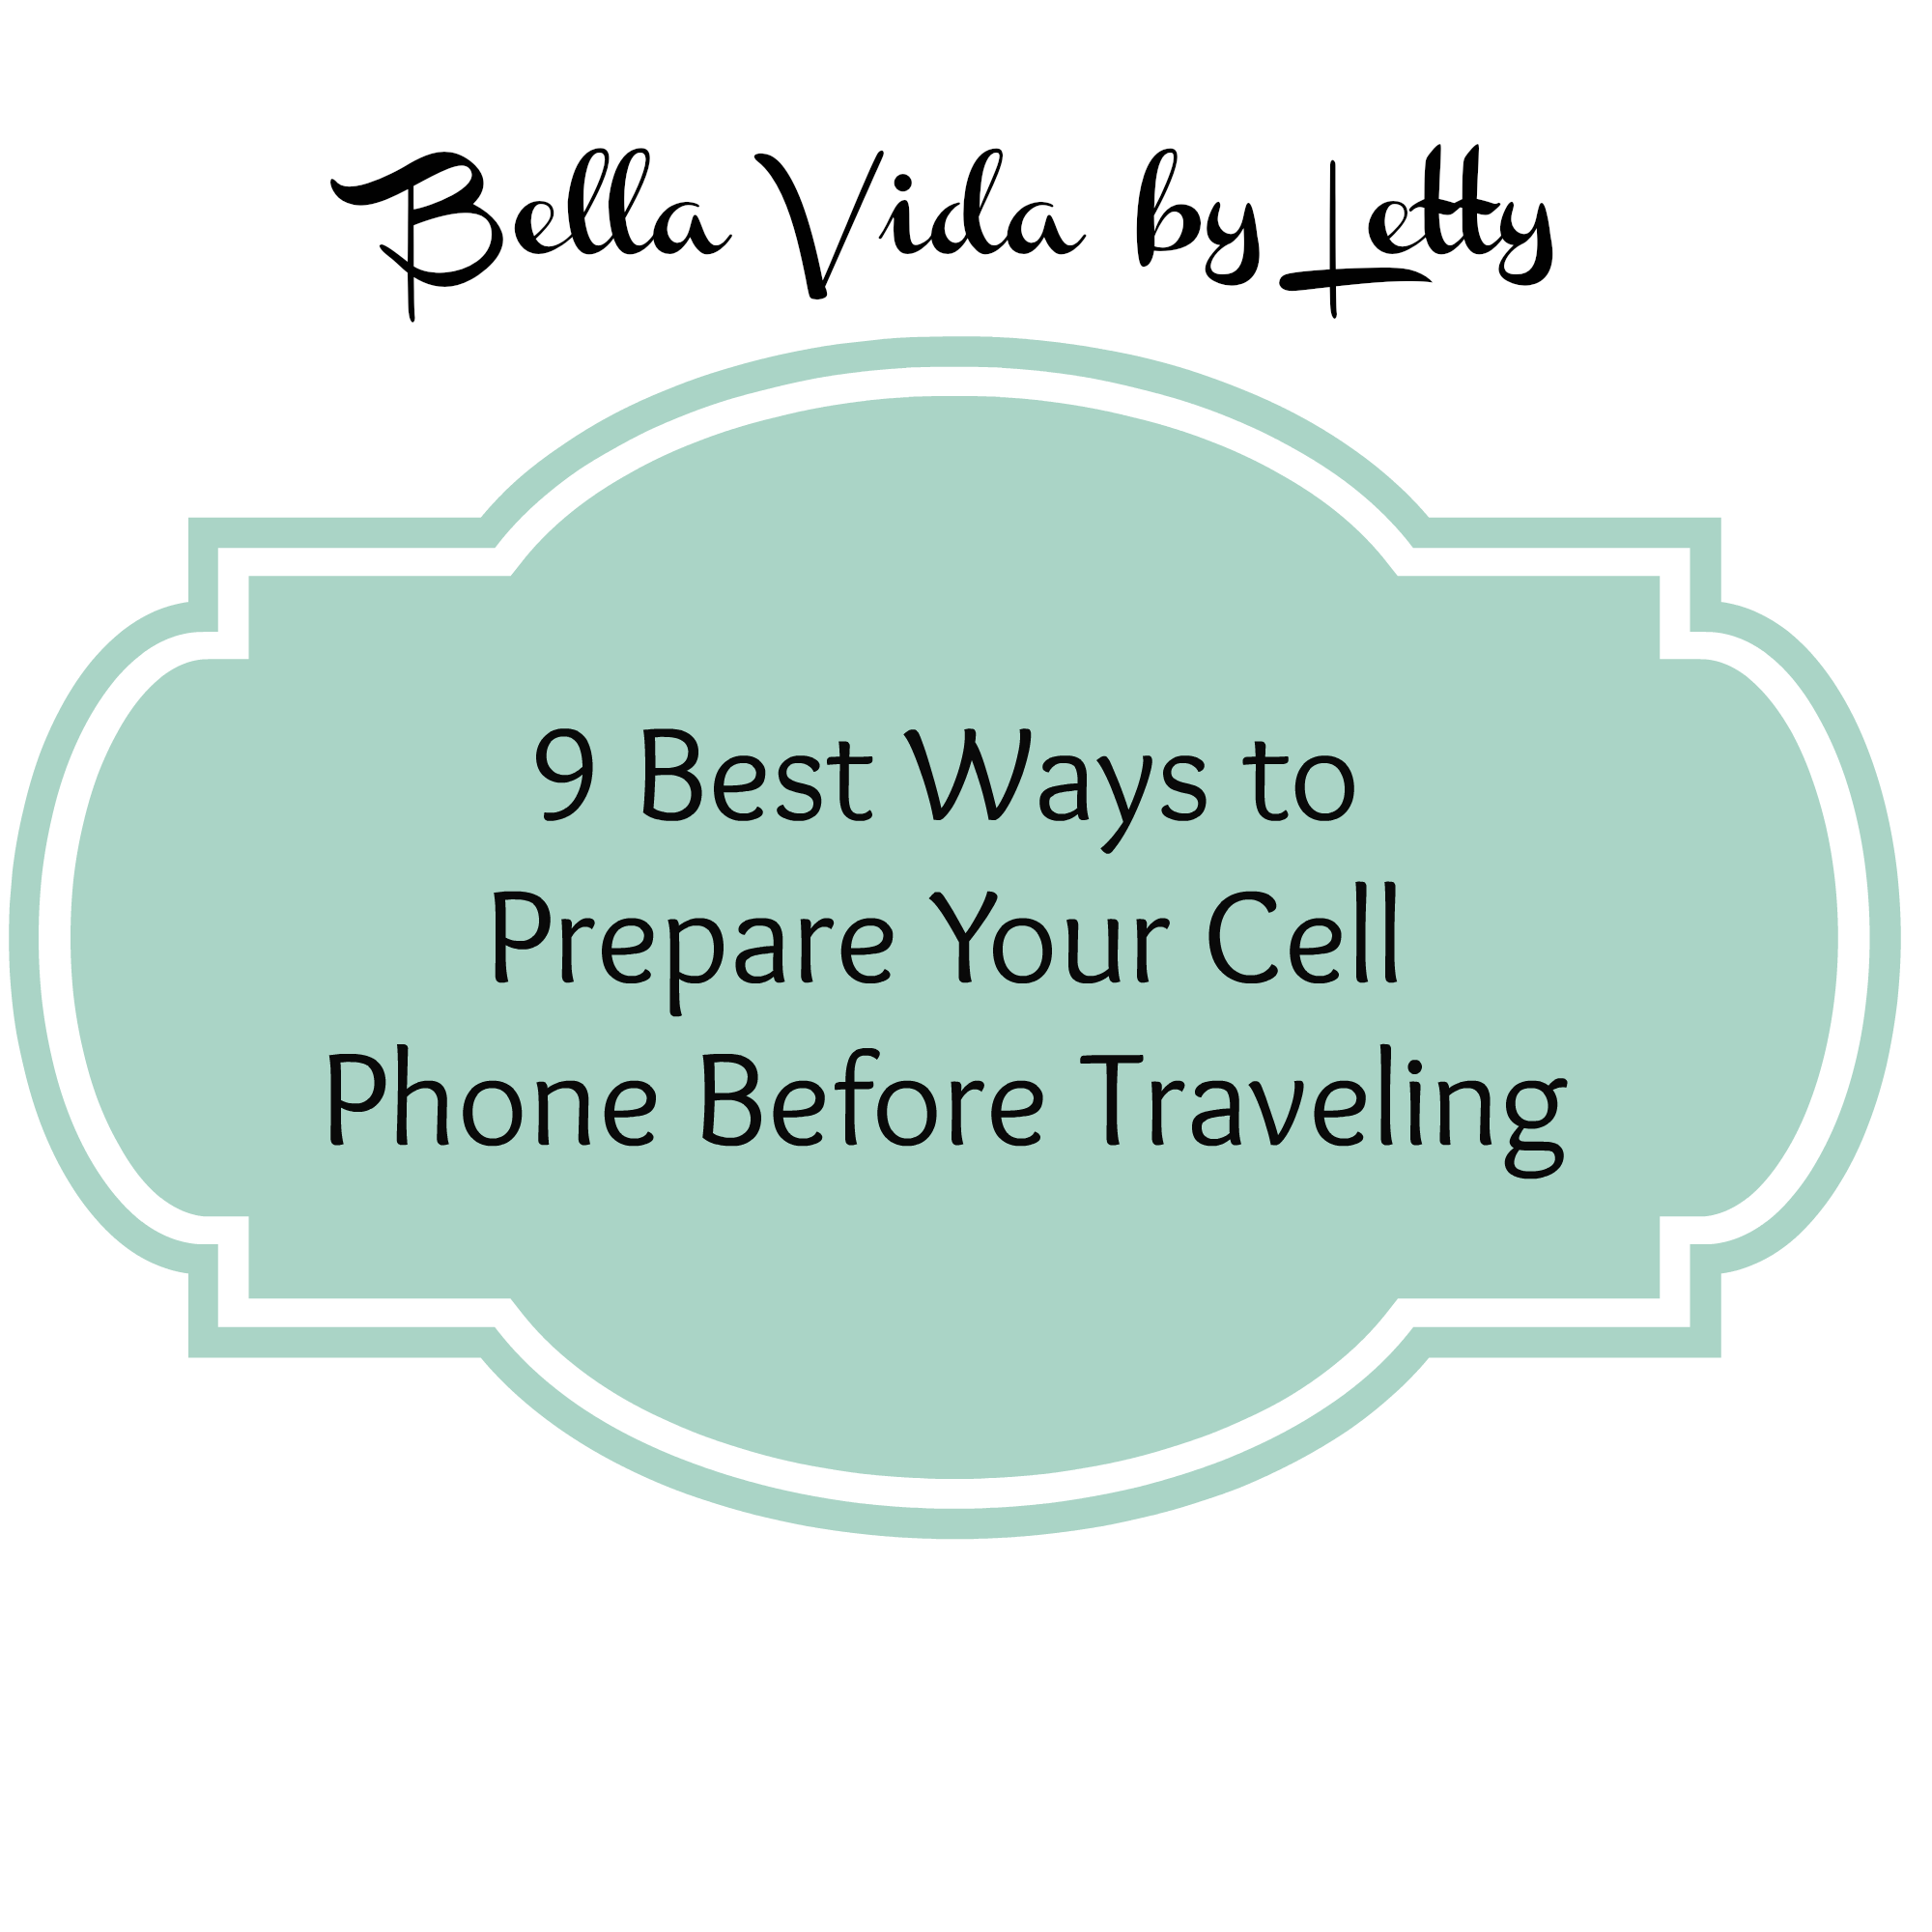 9 Best Ways to Prepare Your Cell Phone Before Traveling